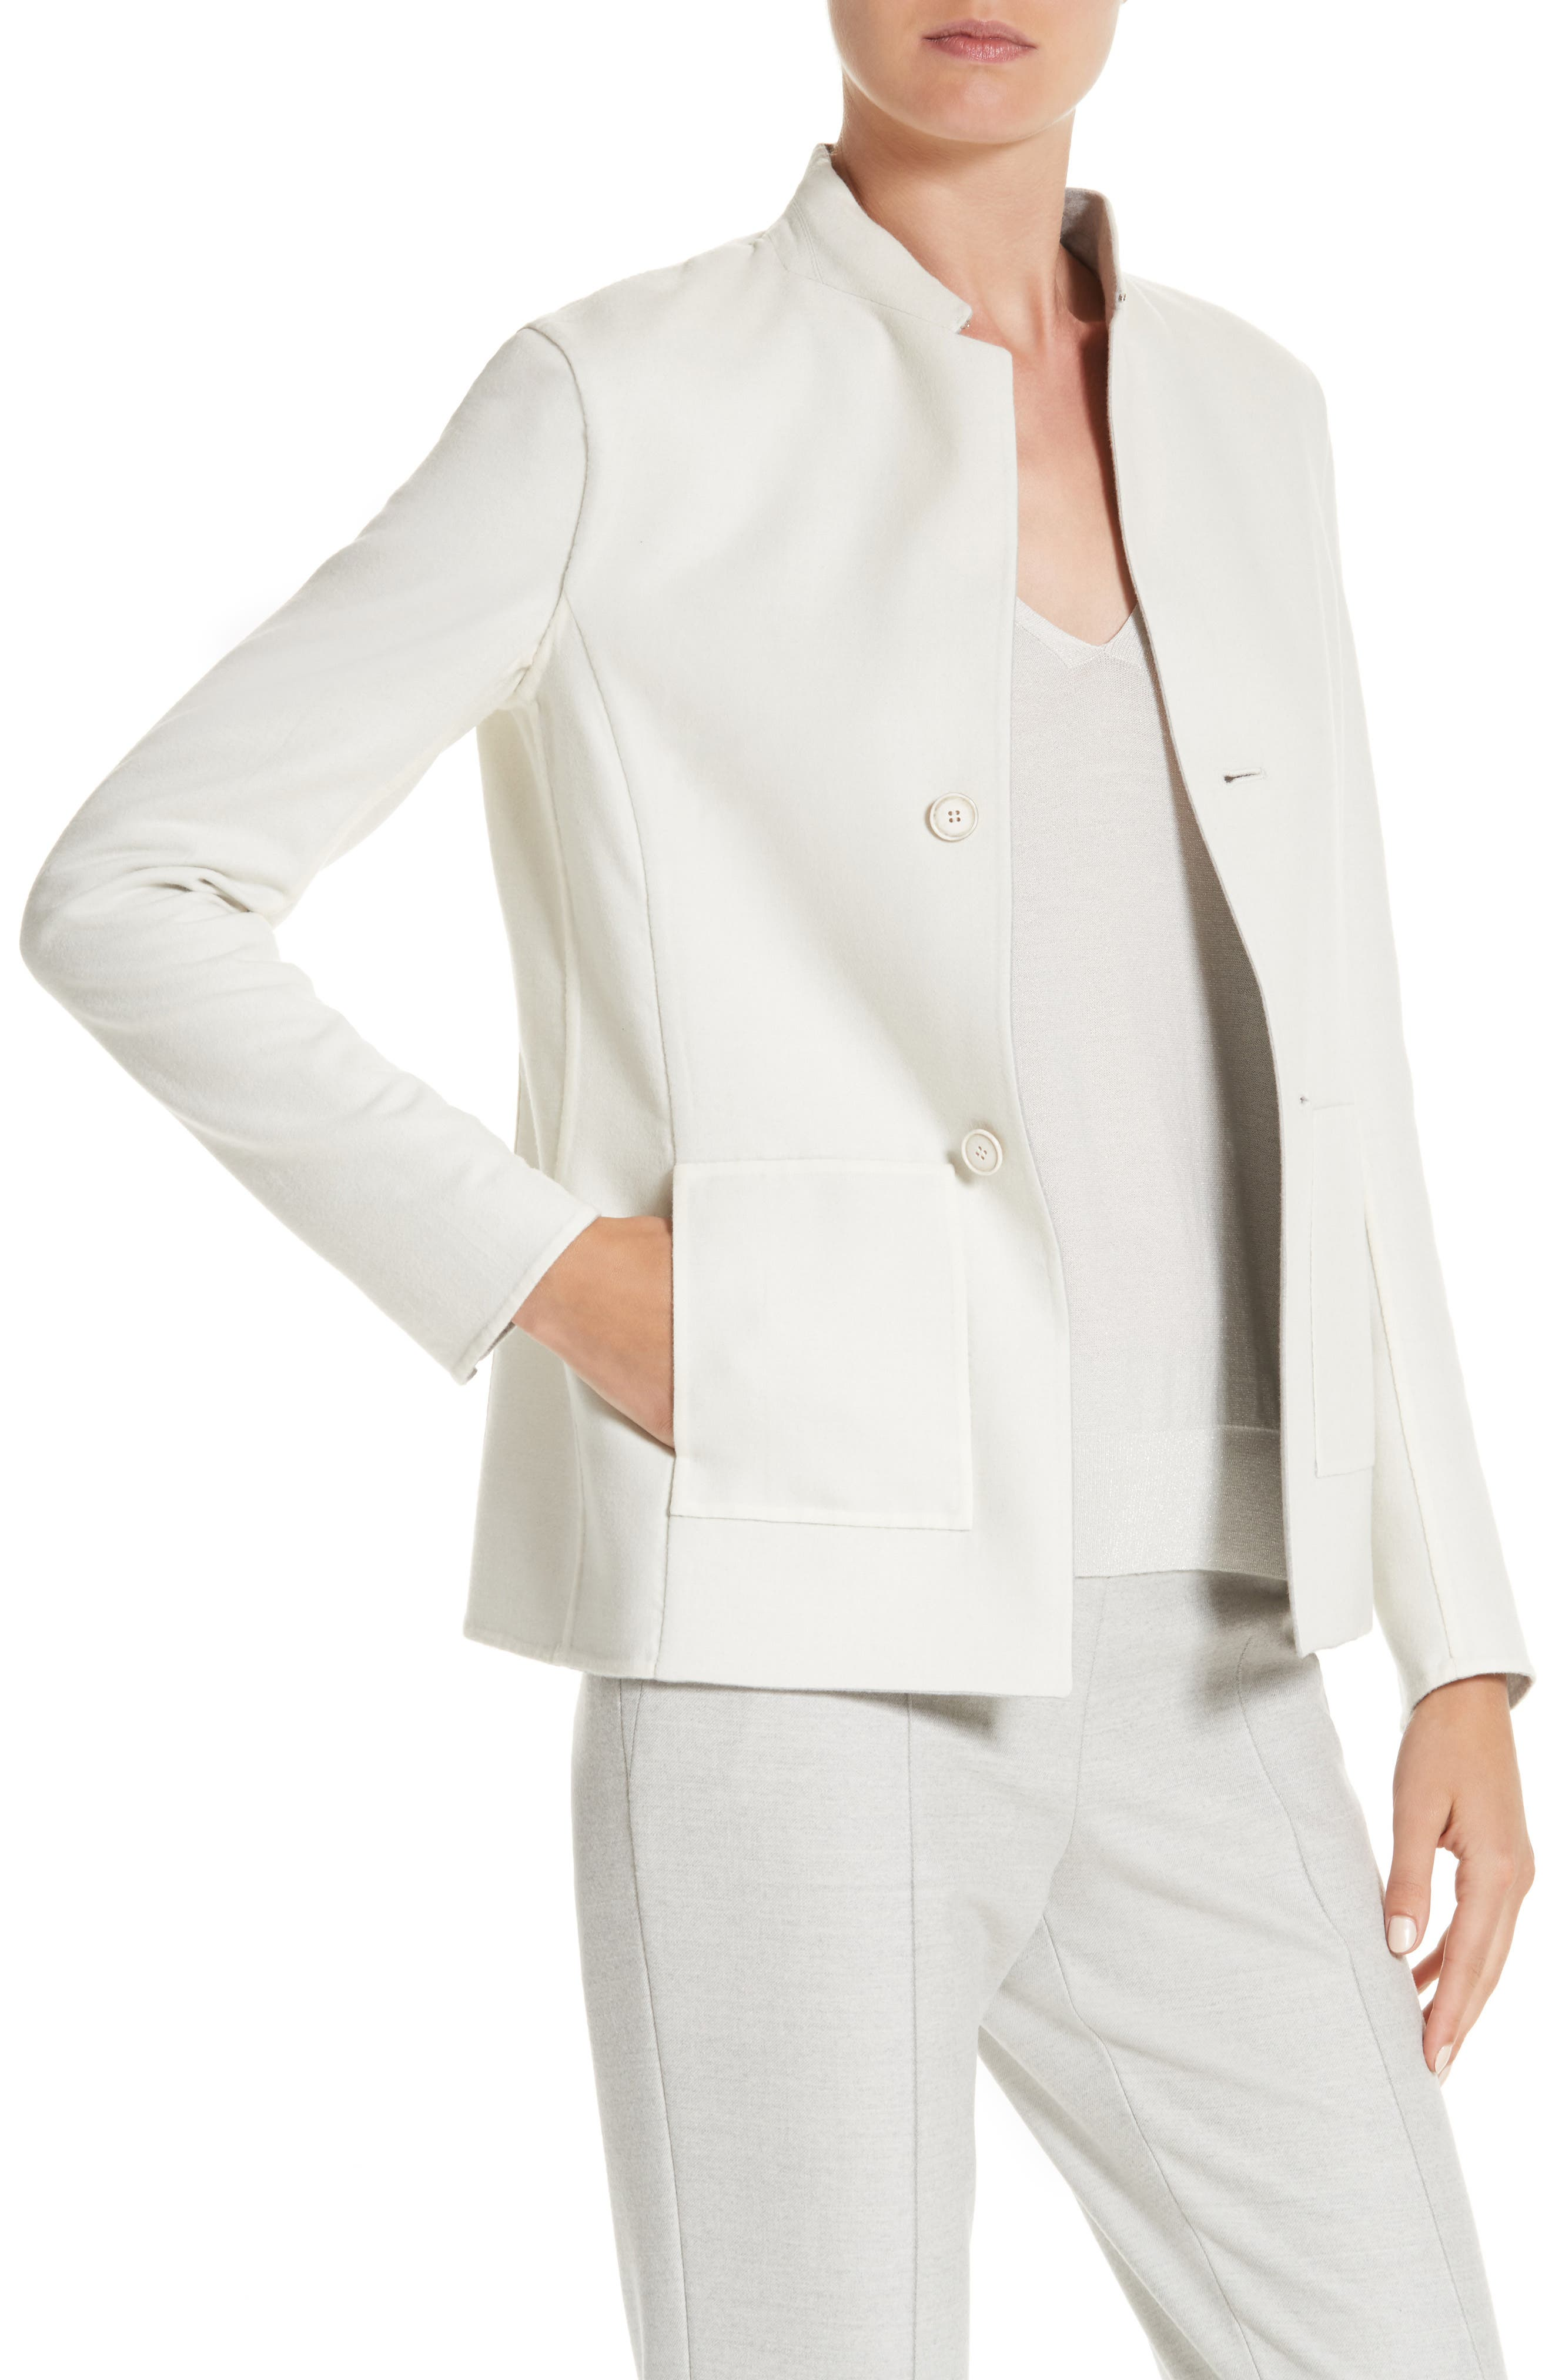 Stretch Wool & Silk Bicolor Reversible Jacket,                             Alternate thumbnail 4, color,                             Gravel/ Off White